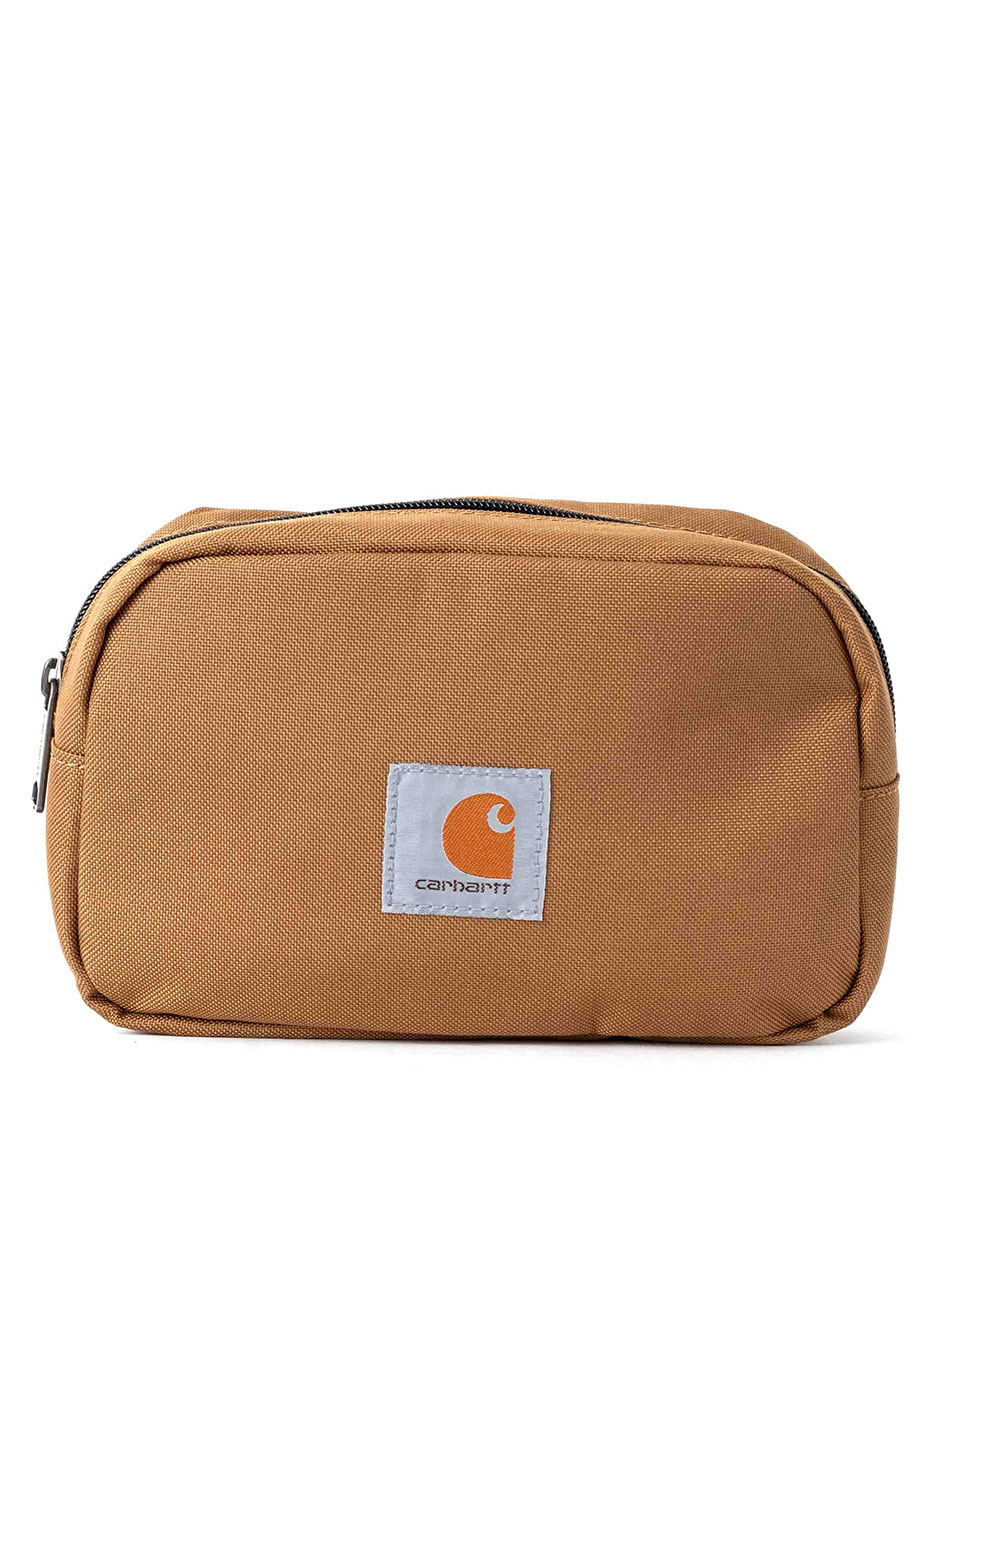 Accessories Pouch - Carhartt Brown